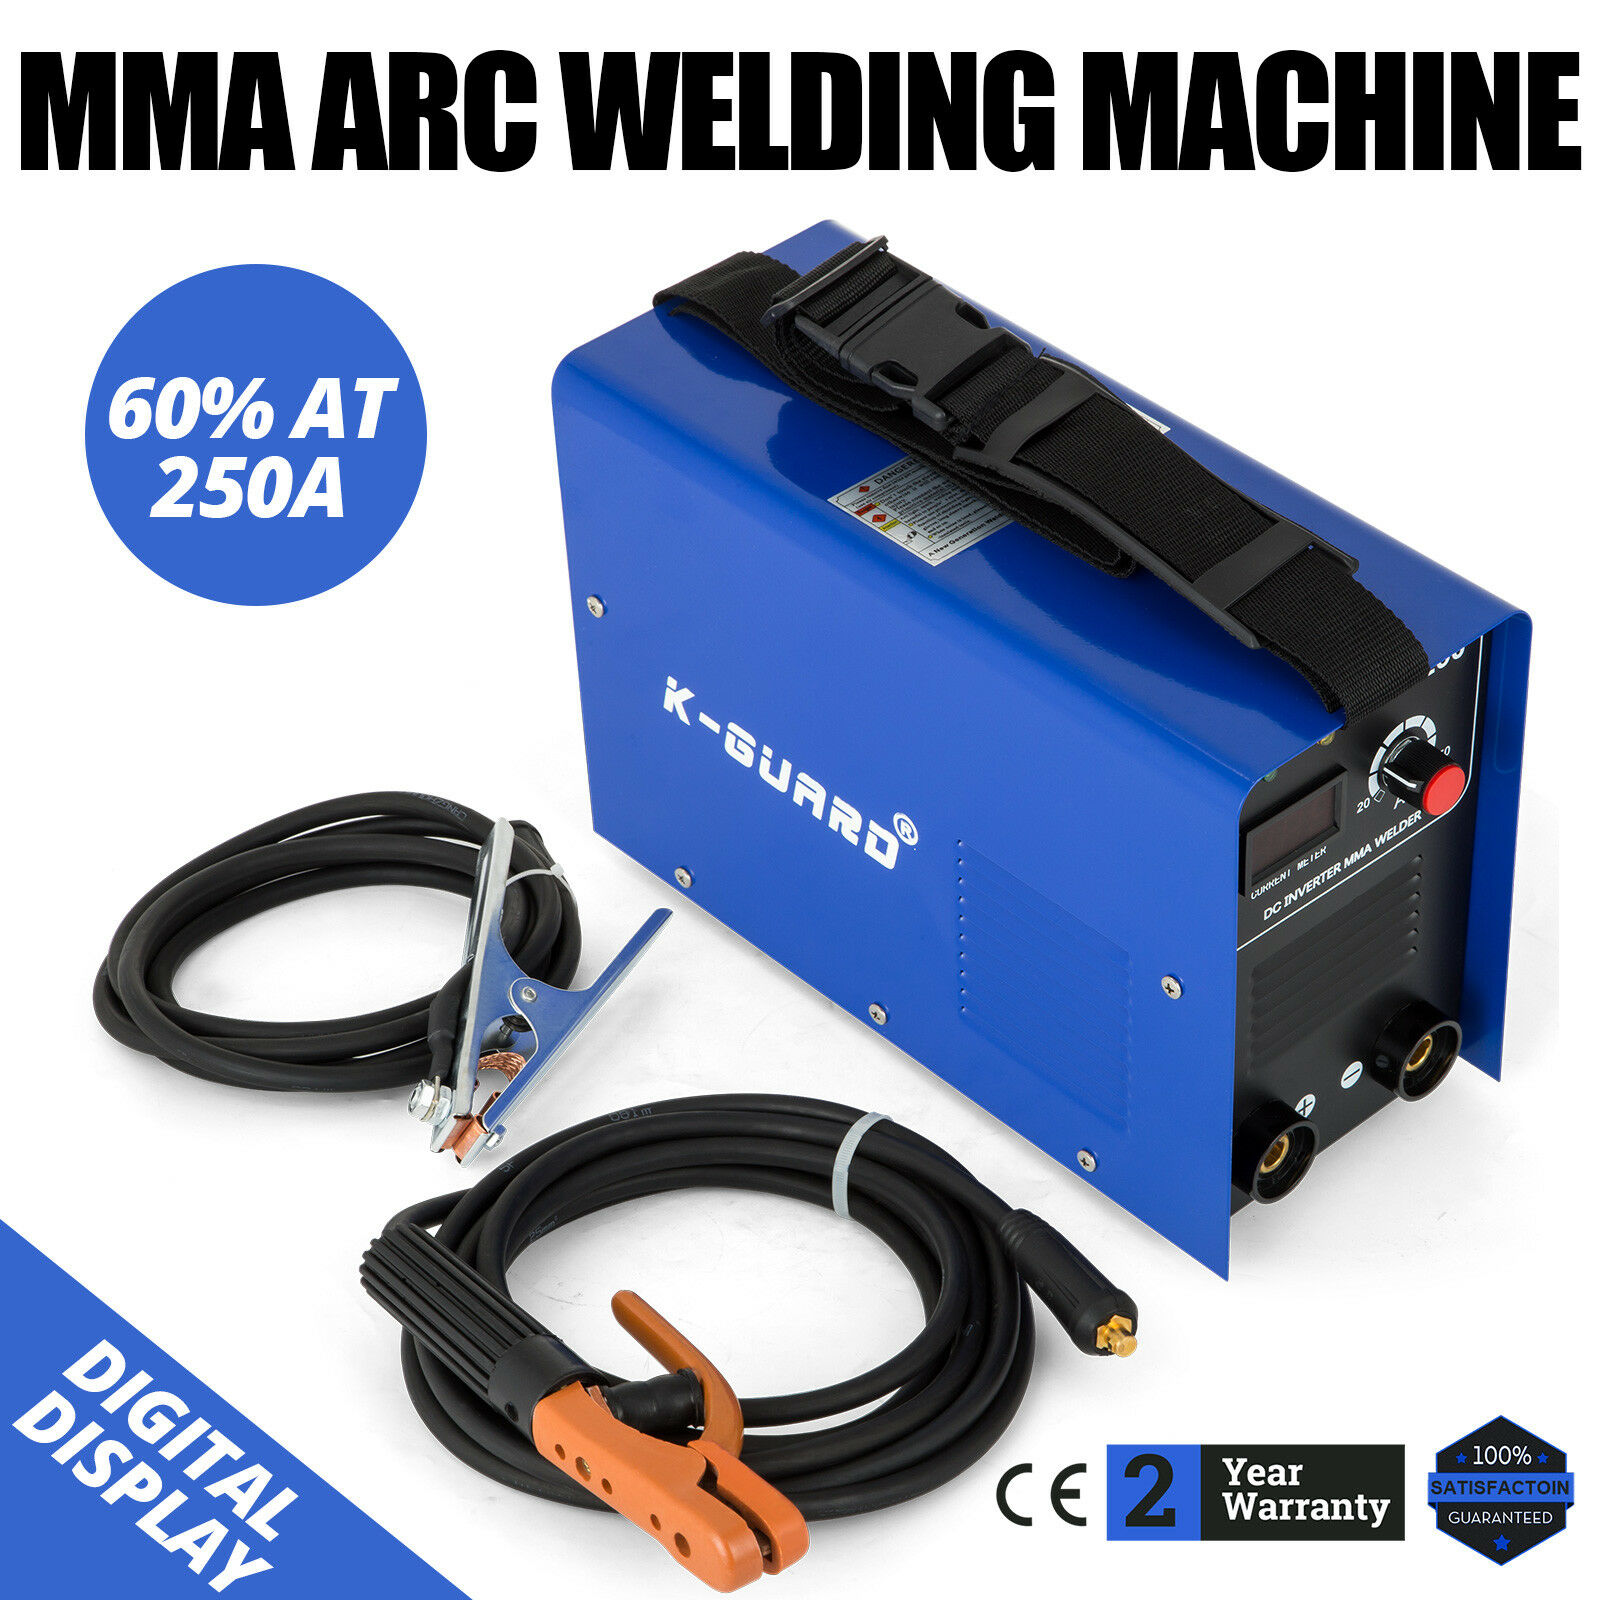 Vevor Mma 250 Arc Stick Welder Dc Inverter Welding Machine Igbt Mode Schematic On 250a 230v 1 Of 12free Shipping See More